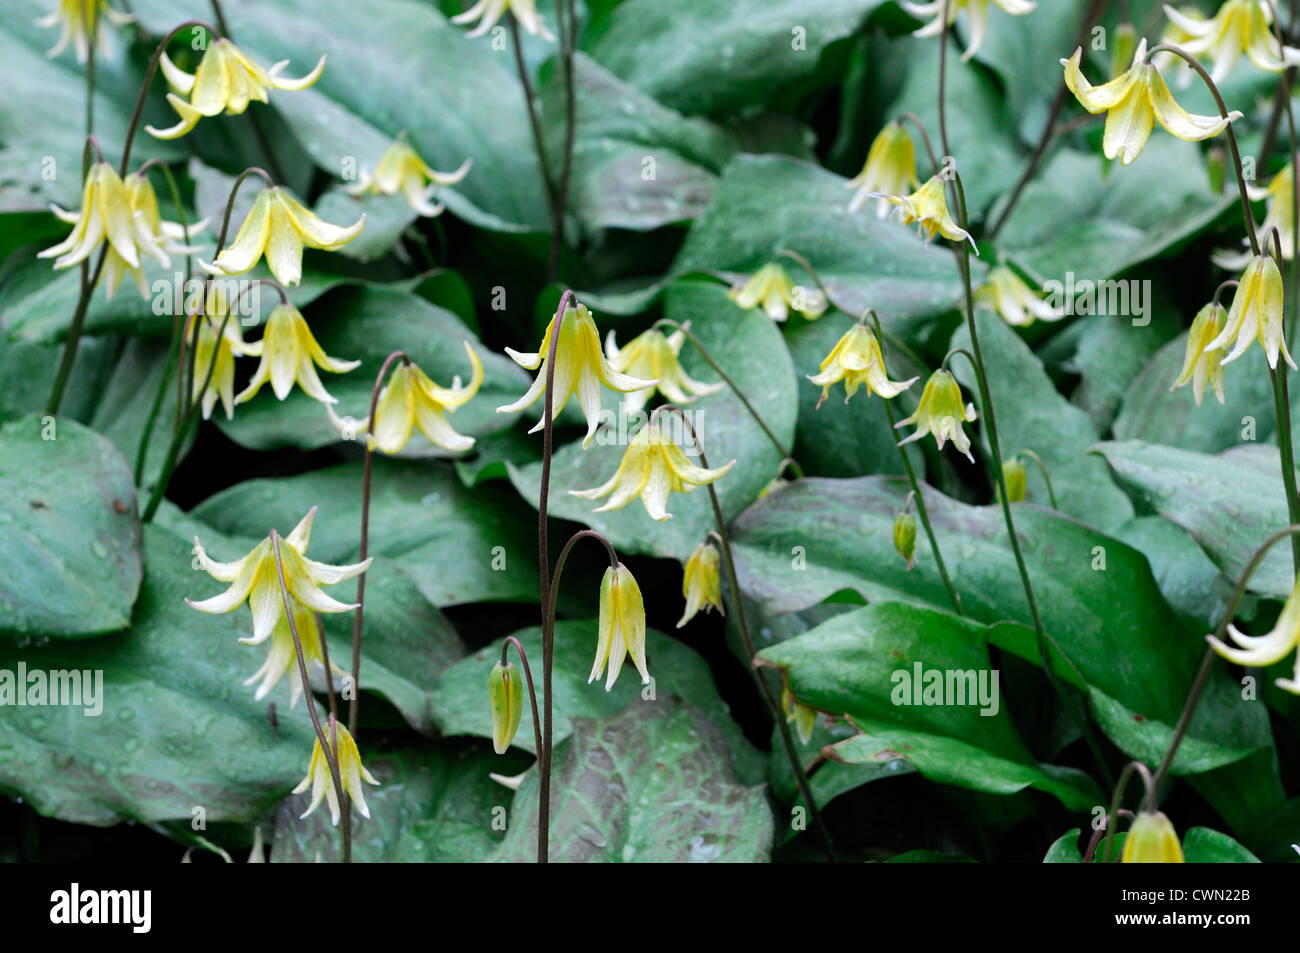 Erythronium pagoda yellow flower woodland shade avalanche lily fawn erythronium pagoda yellow flower woodland shade avalanche lily fawn lily glacier lily trout lily flower spring bloom blossom izmirmasajfo